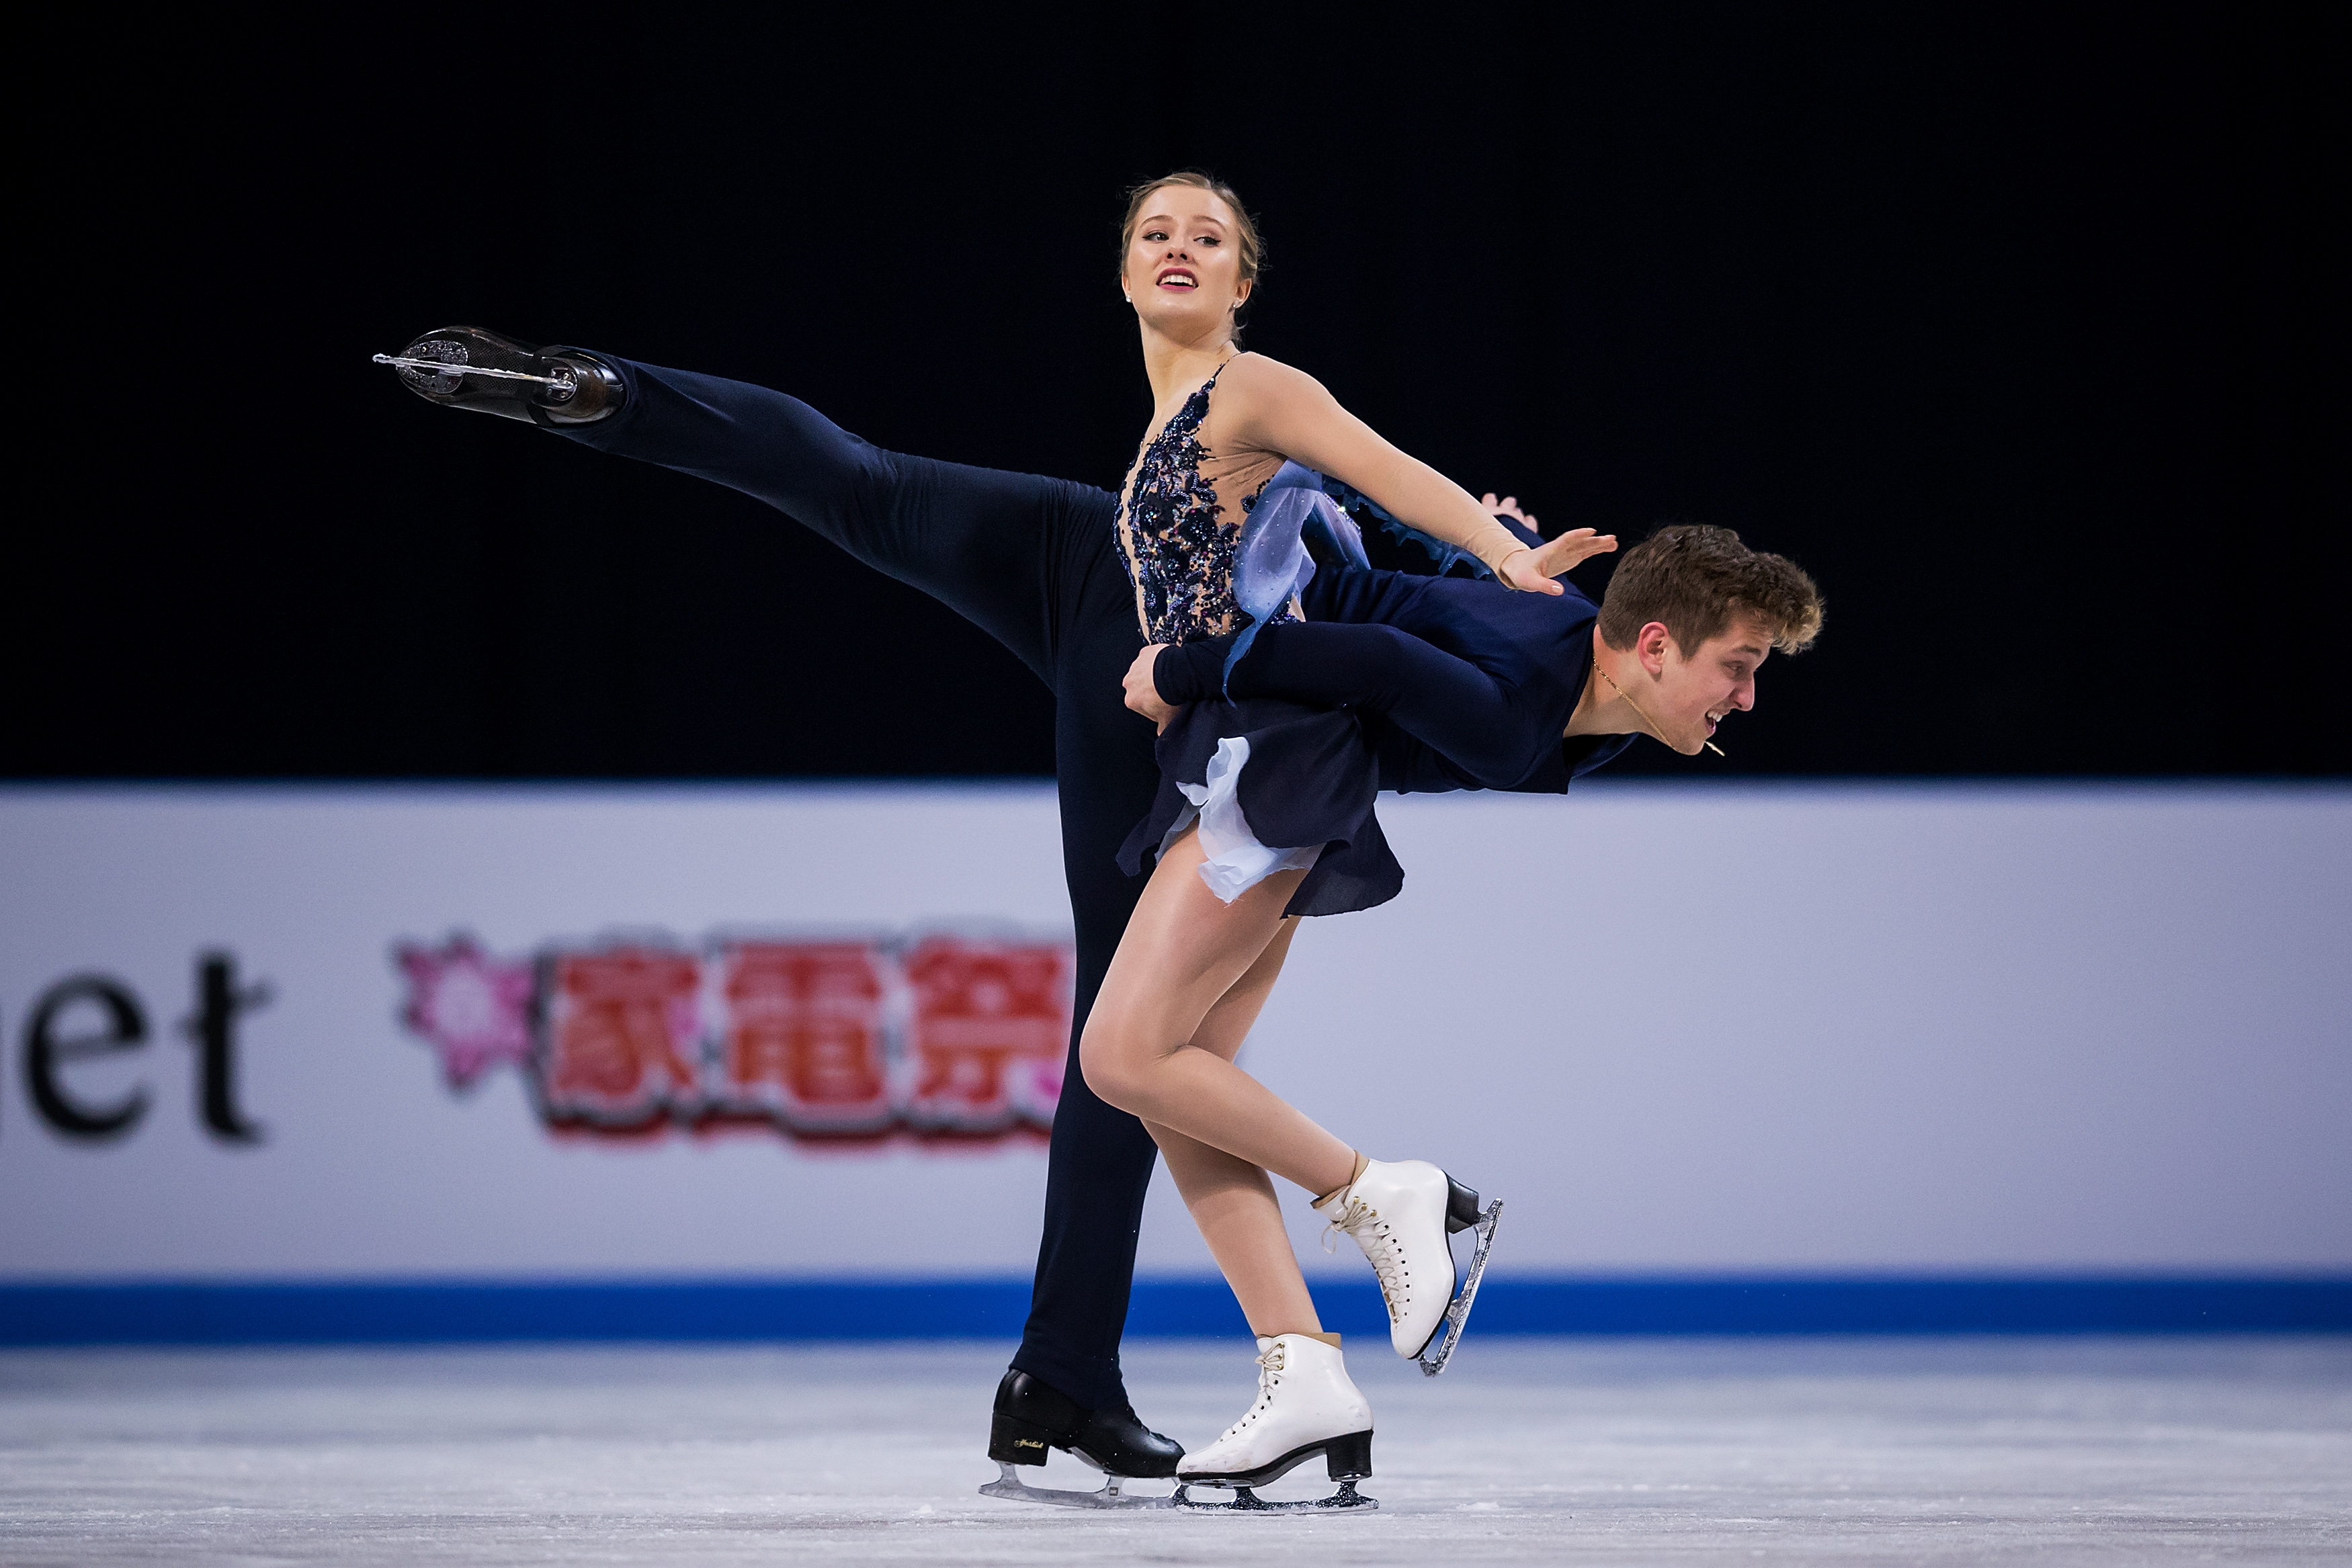 World Junior Figure Skating Championships - Sofia